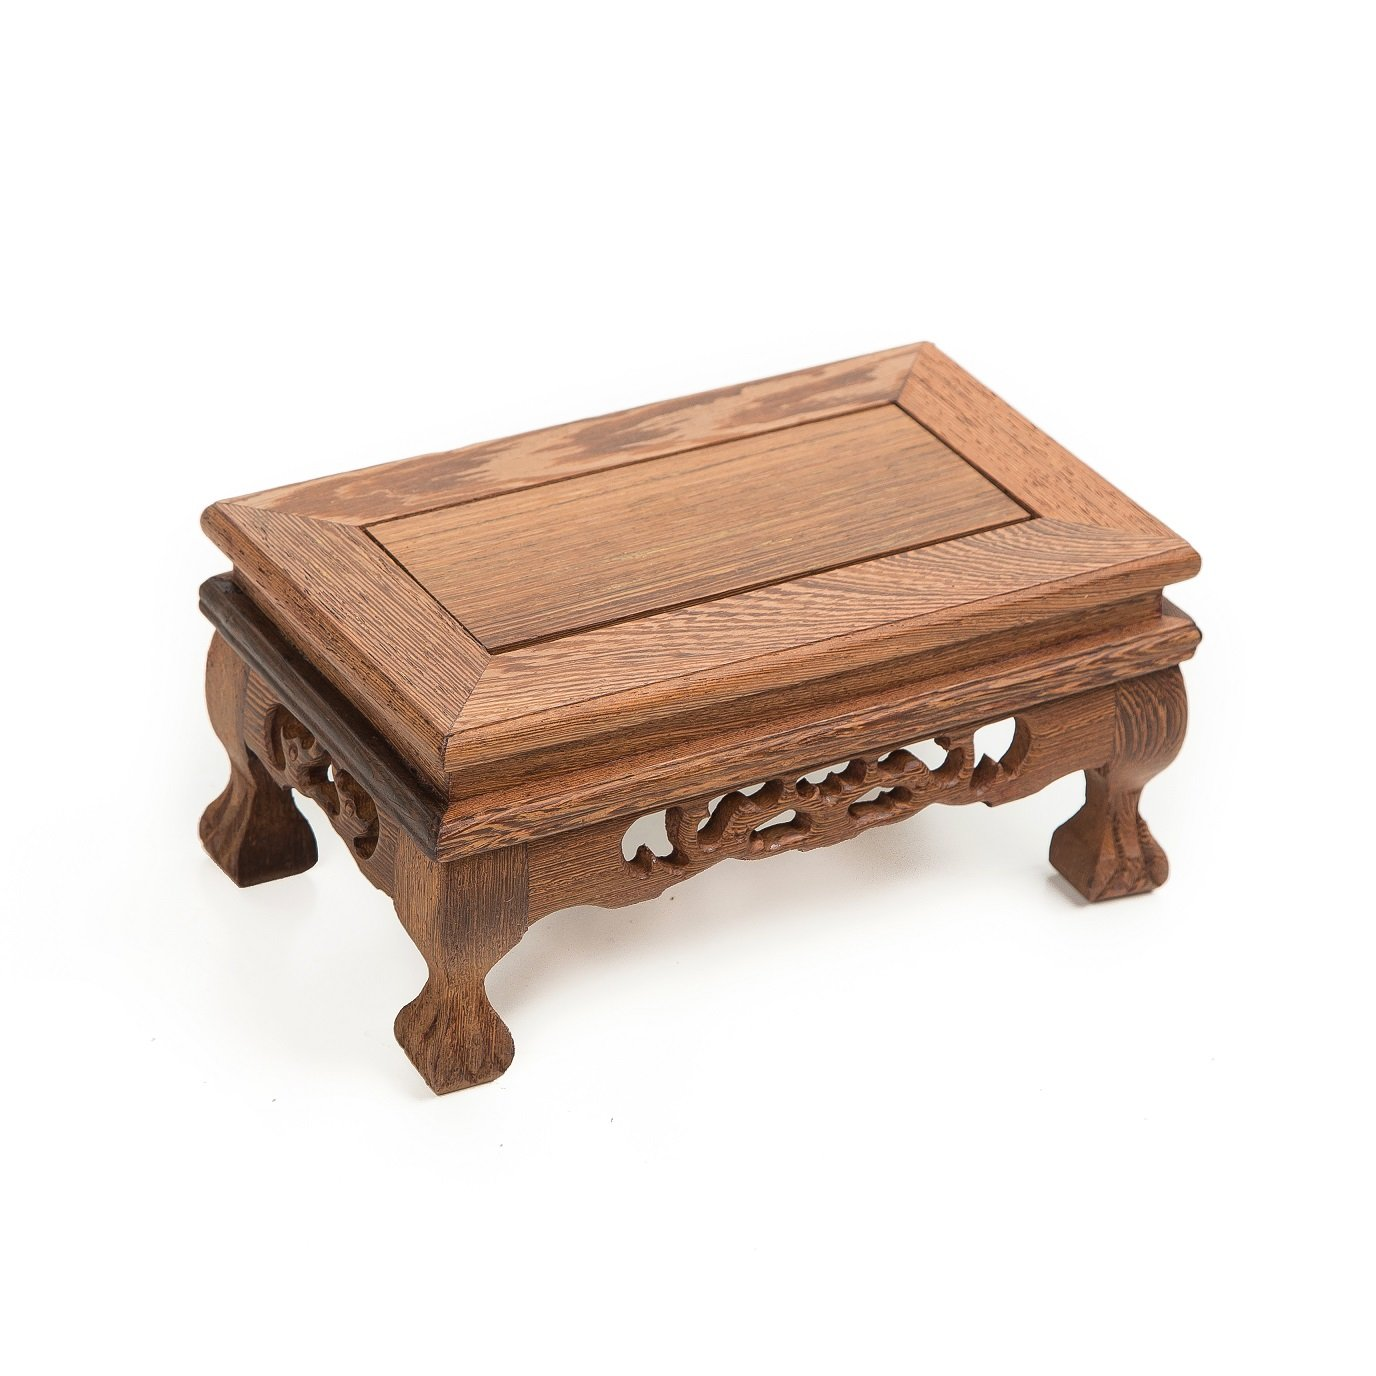 LuoLuo Chinese Display Stand Wooden Rectangle Shape Tiger Feet Carved Solid Rosewood JiChi Wood Display Base Holder For Arts Antique Etc, Home Decoration (S 18.5cm11cm9cm) by LuoLuo (Image #3)